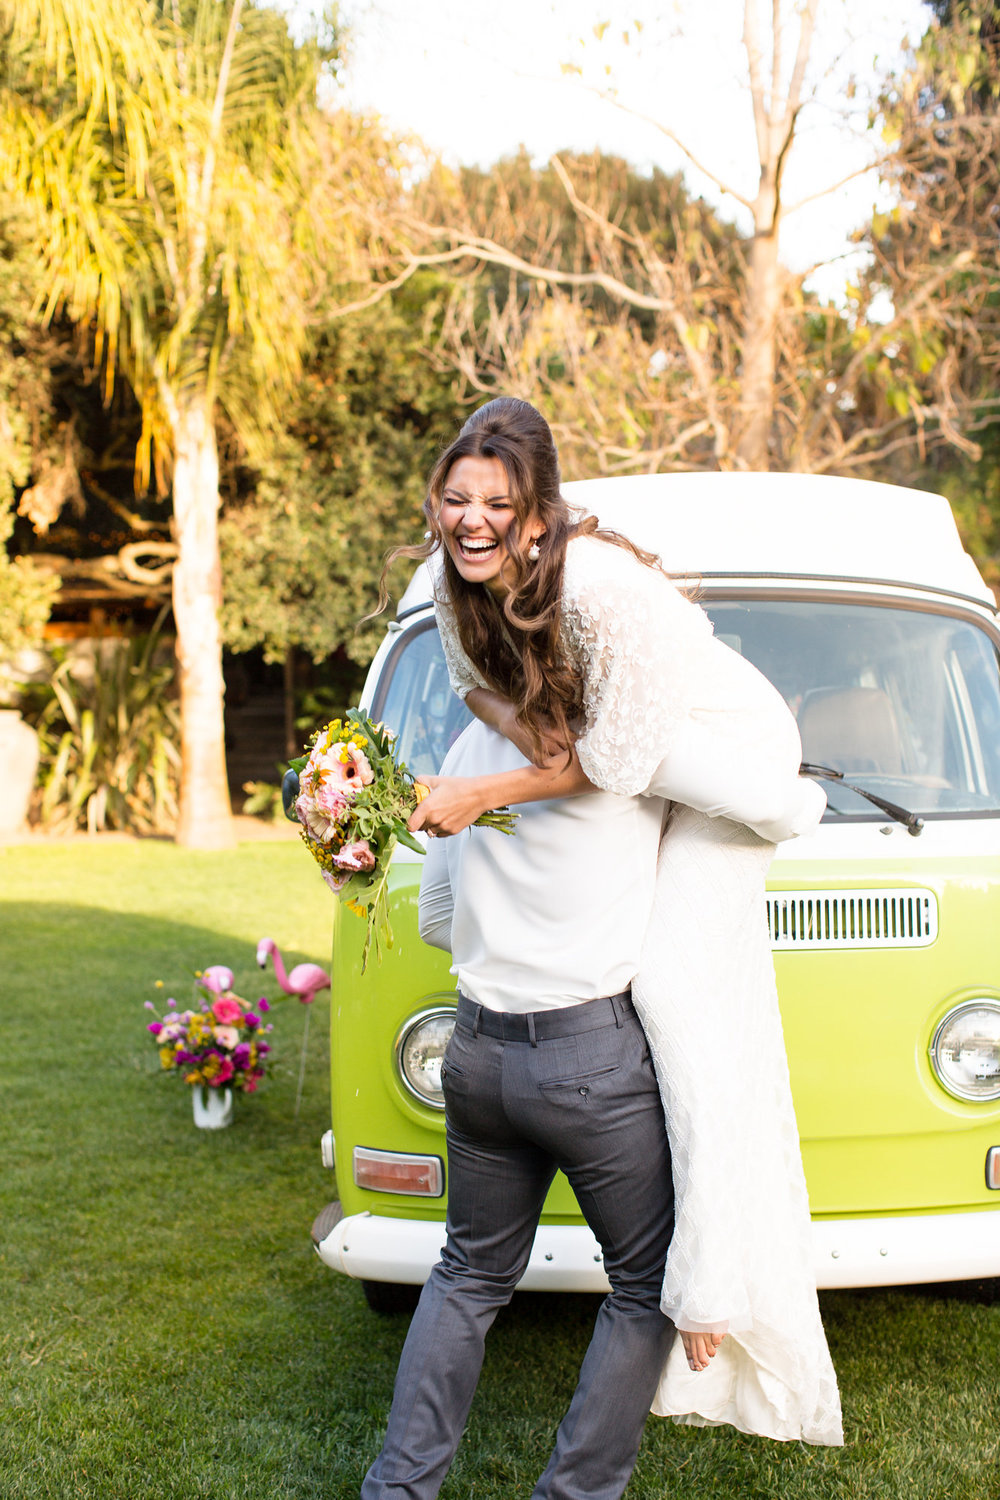 fun bride and groom playing together in front of green vw bus kim baker beauty san jose california makeup artist wedding styled photoshoot at the holly farm in carmel